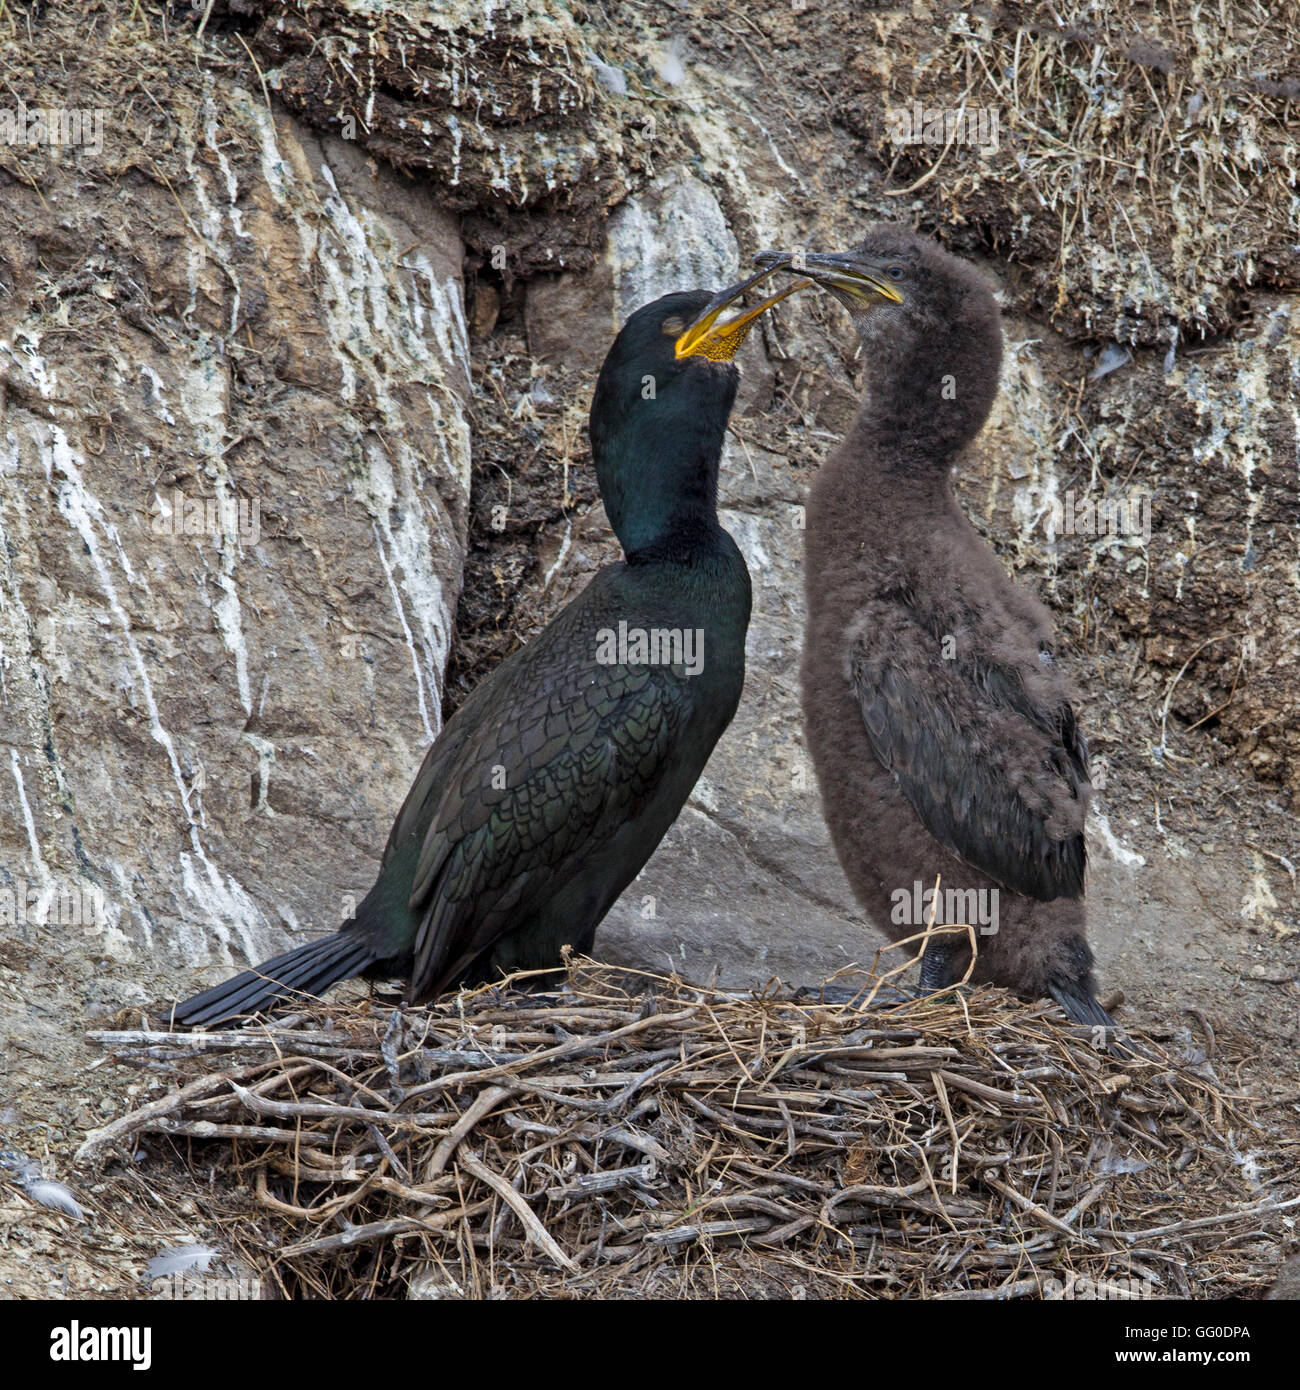 European shag on nest with chick - Stock Image